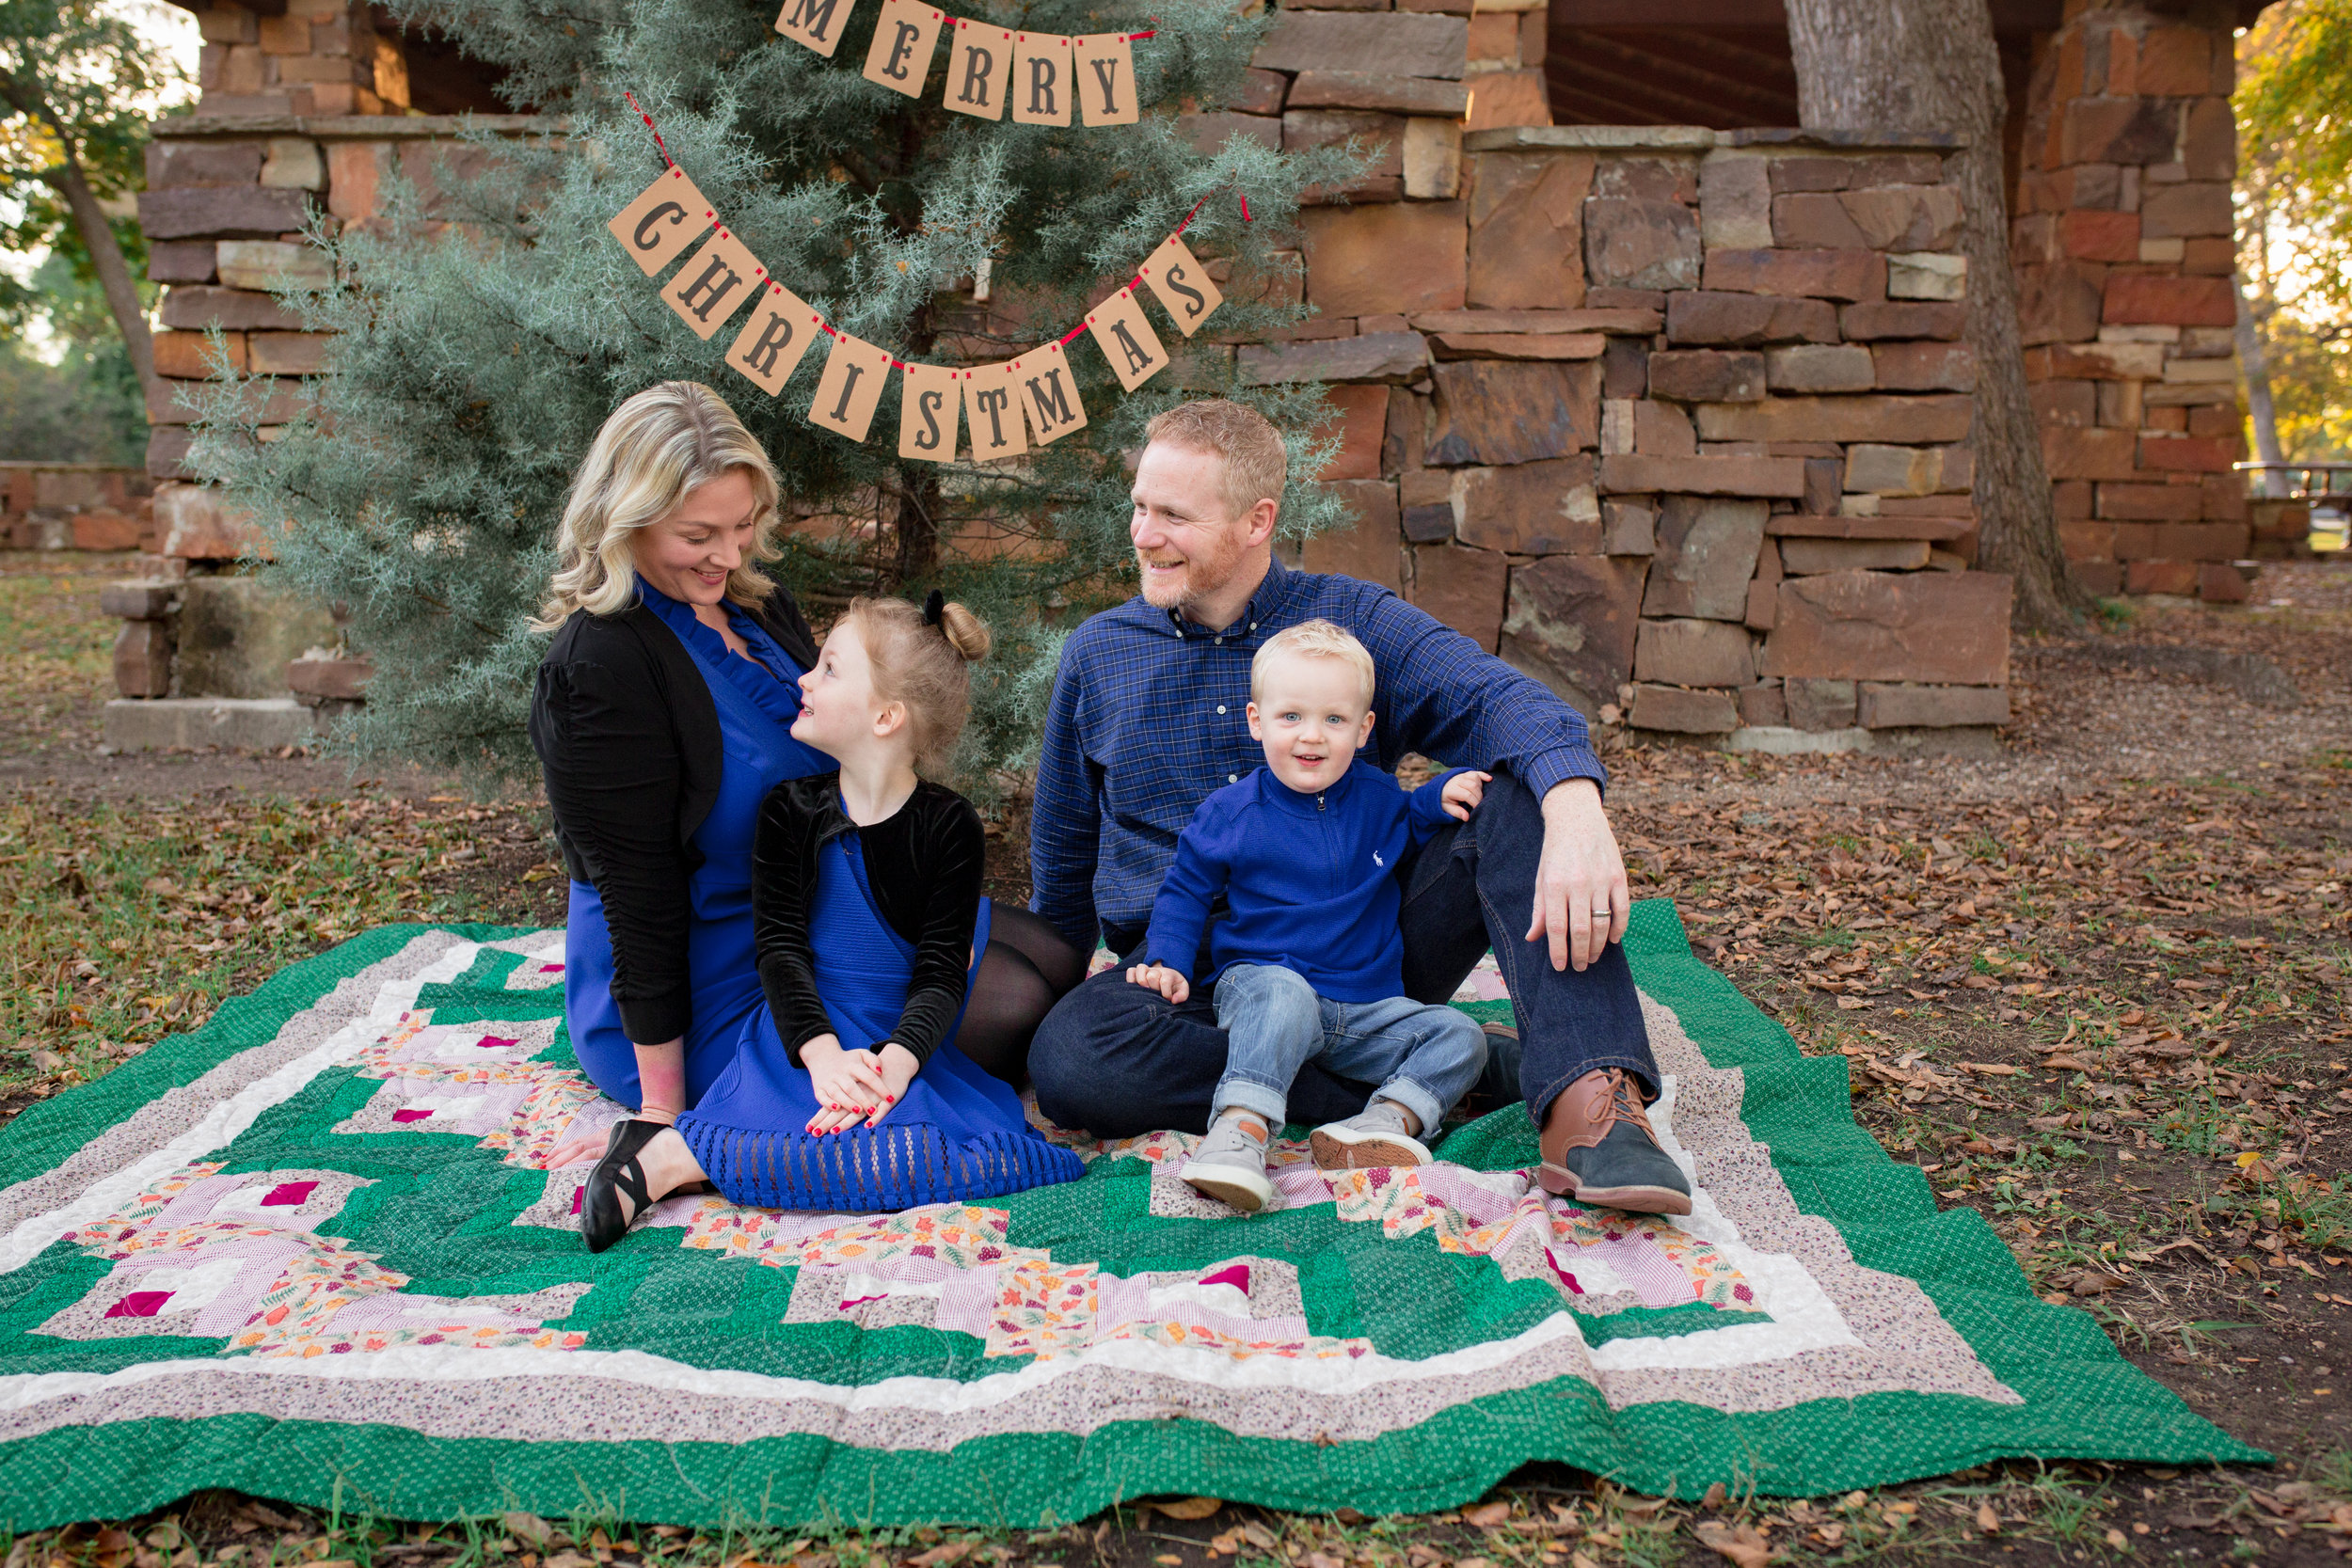 18_11_04 The Brown Family Session41.jpg